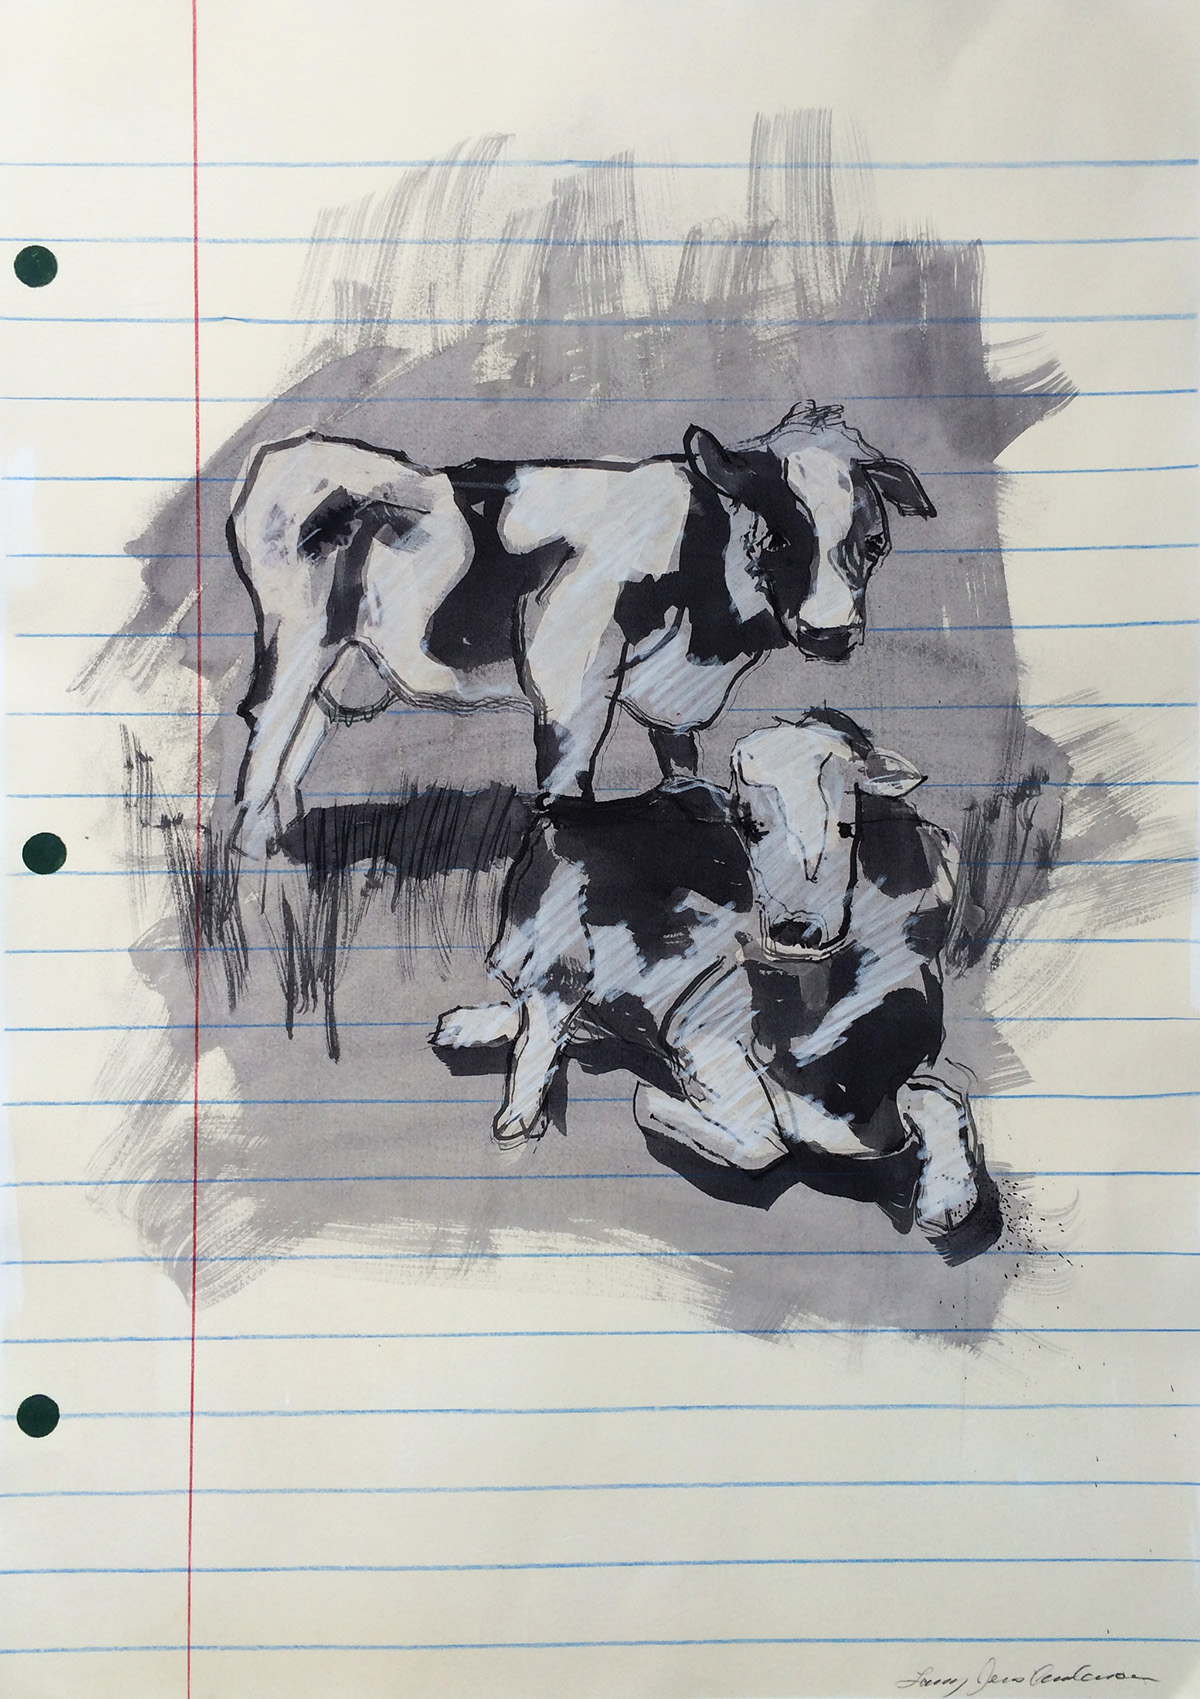 2 Cows mixed media on paper 29 x 21 inches LJA 109G